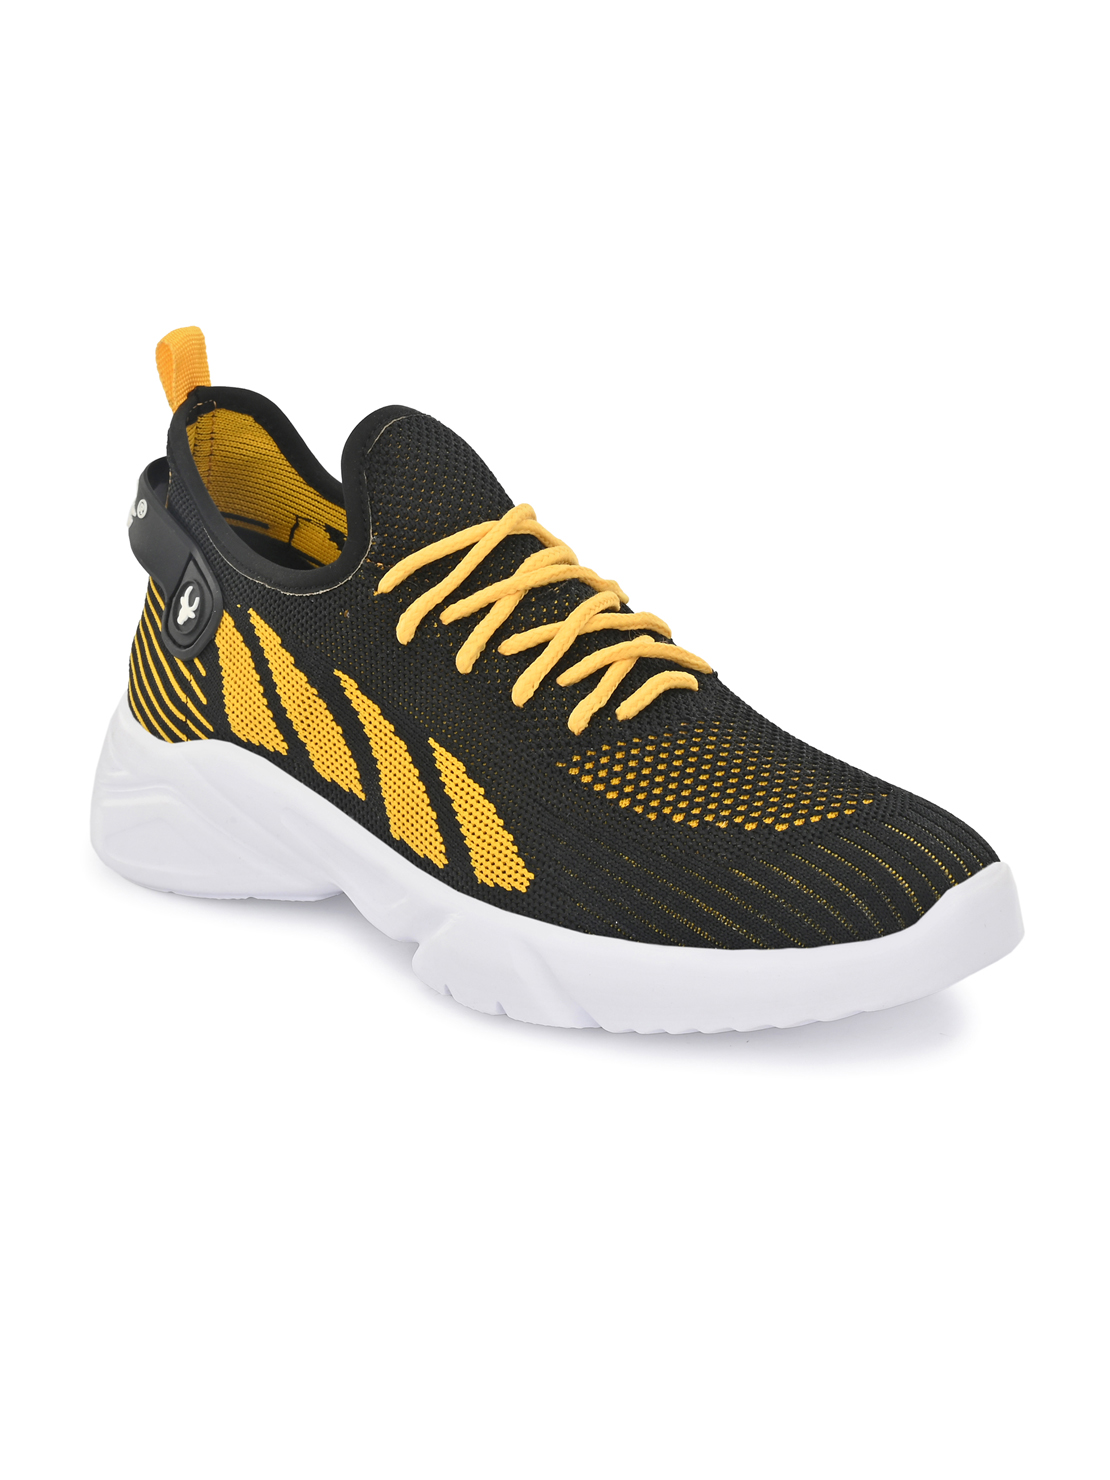 Hirolas   Hirolas® Knitted athleisure Sports Shoes - Blue/Yellow